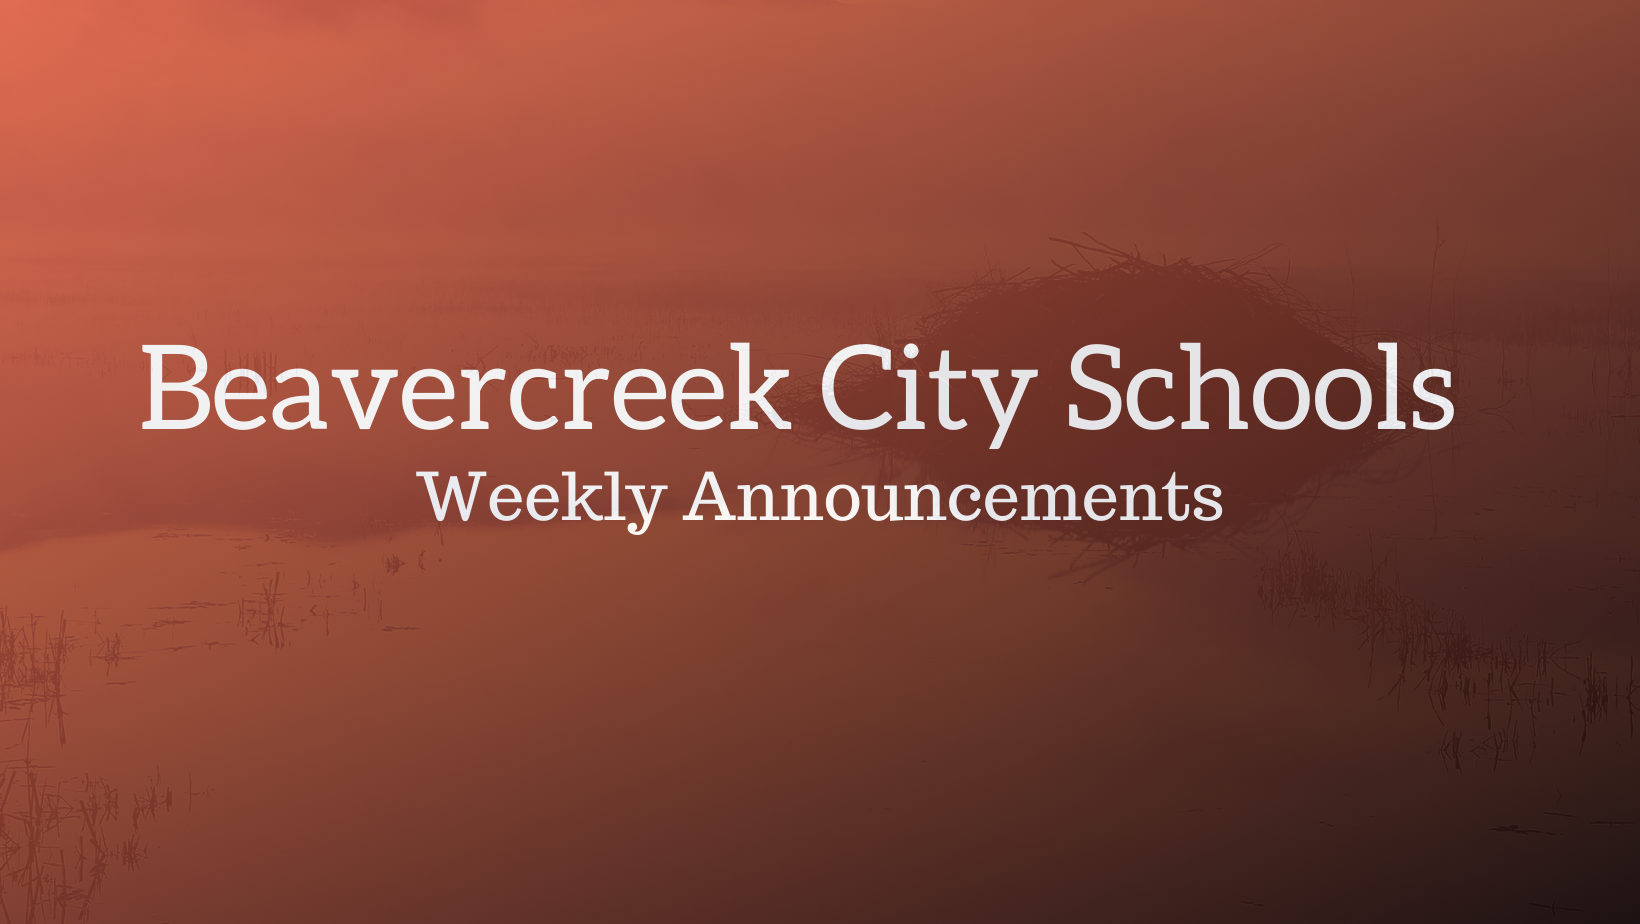 weekly announcement